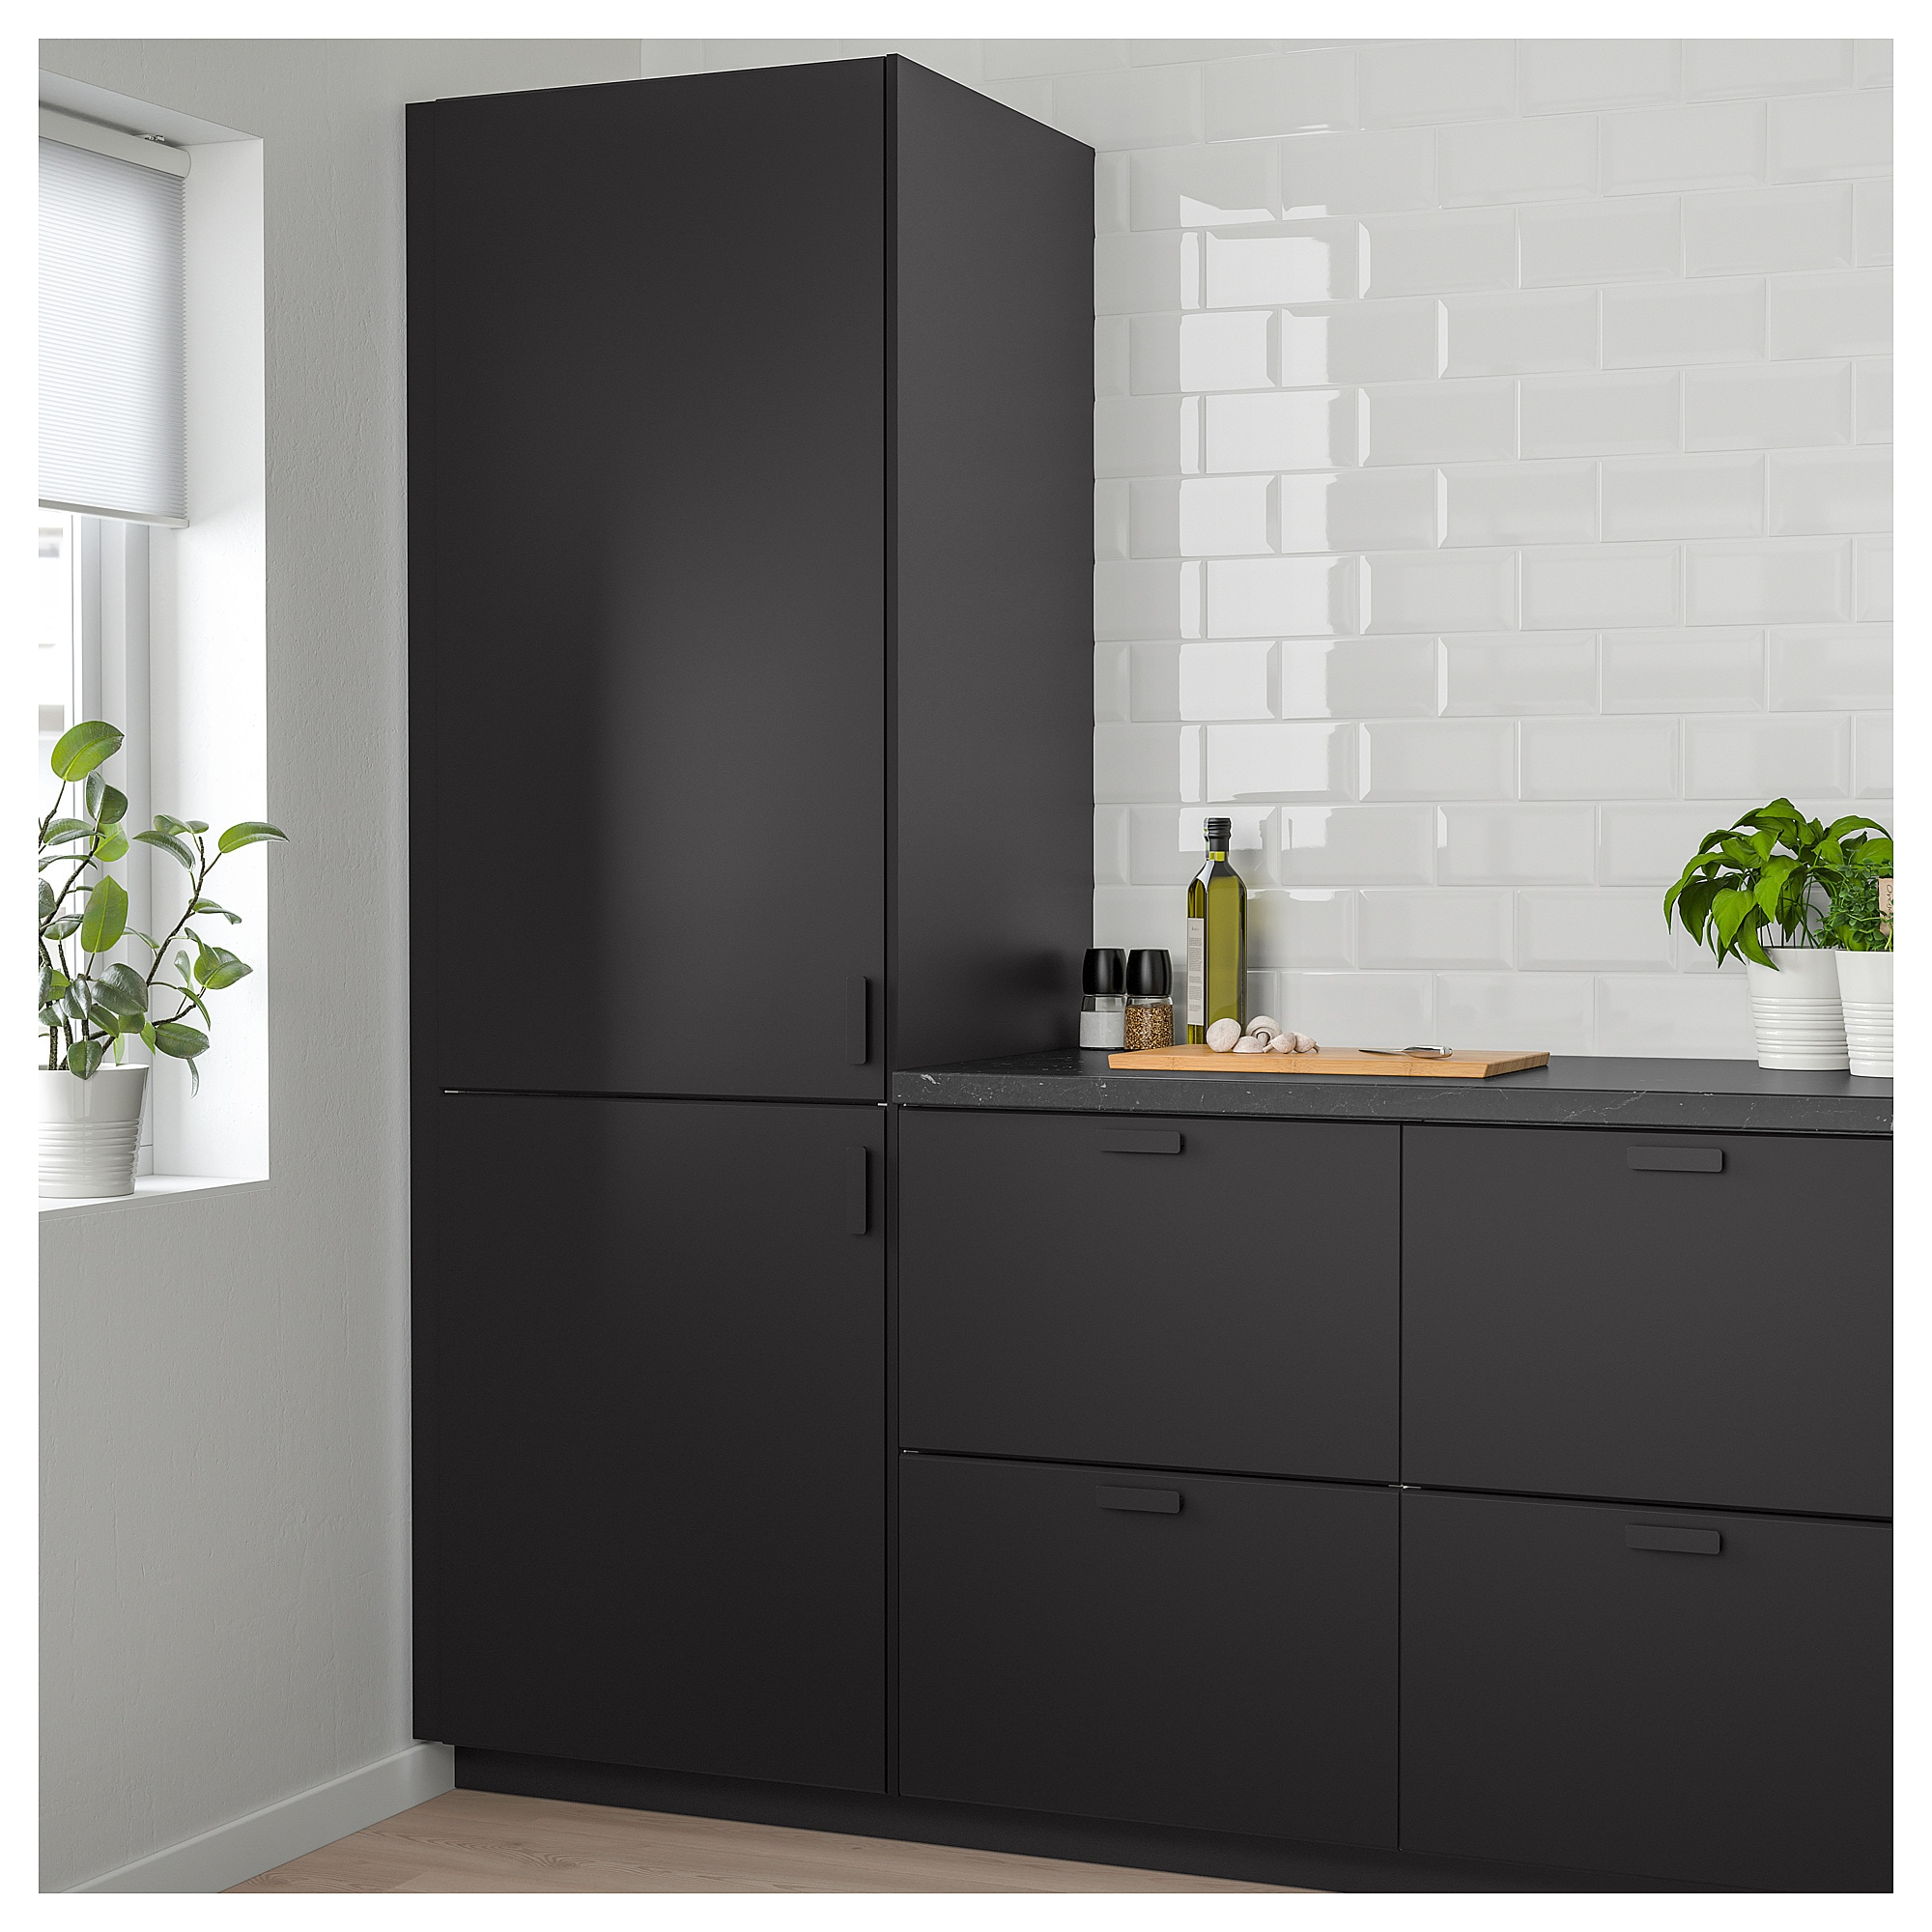 Kungsbacka Door Anthracite